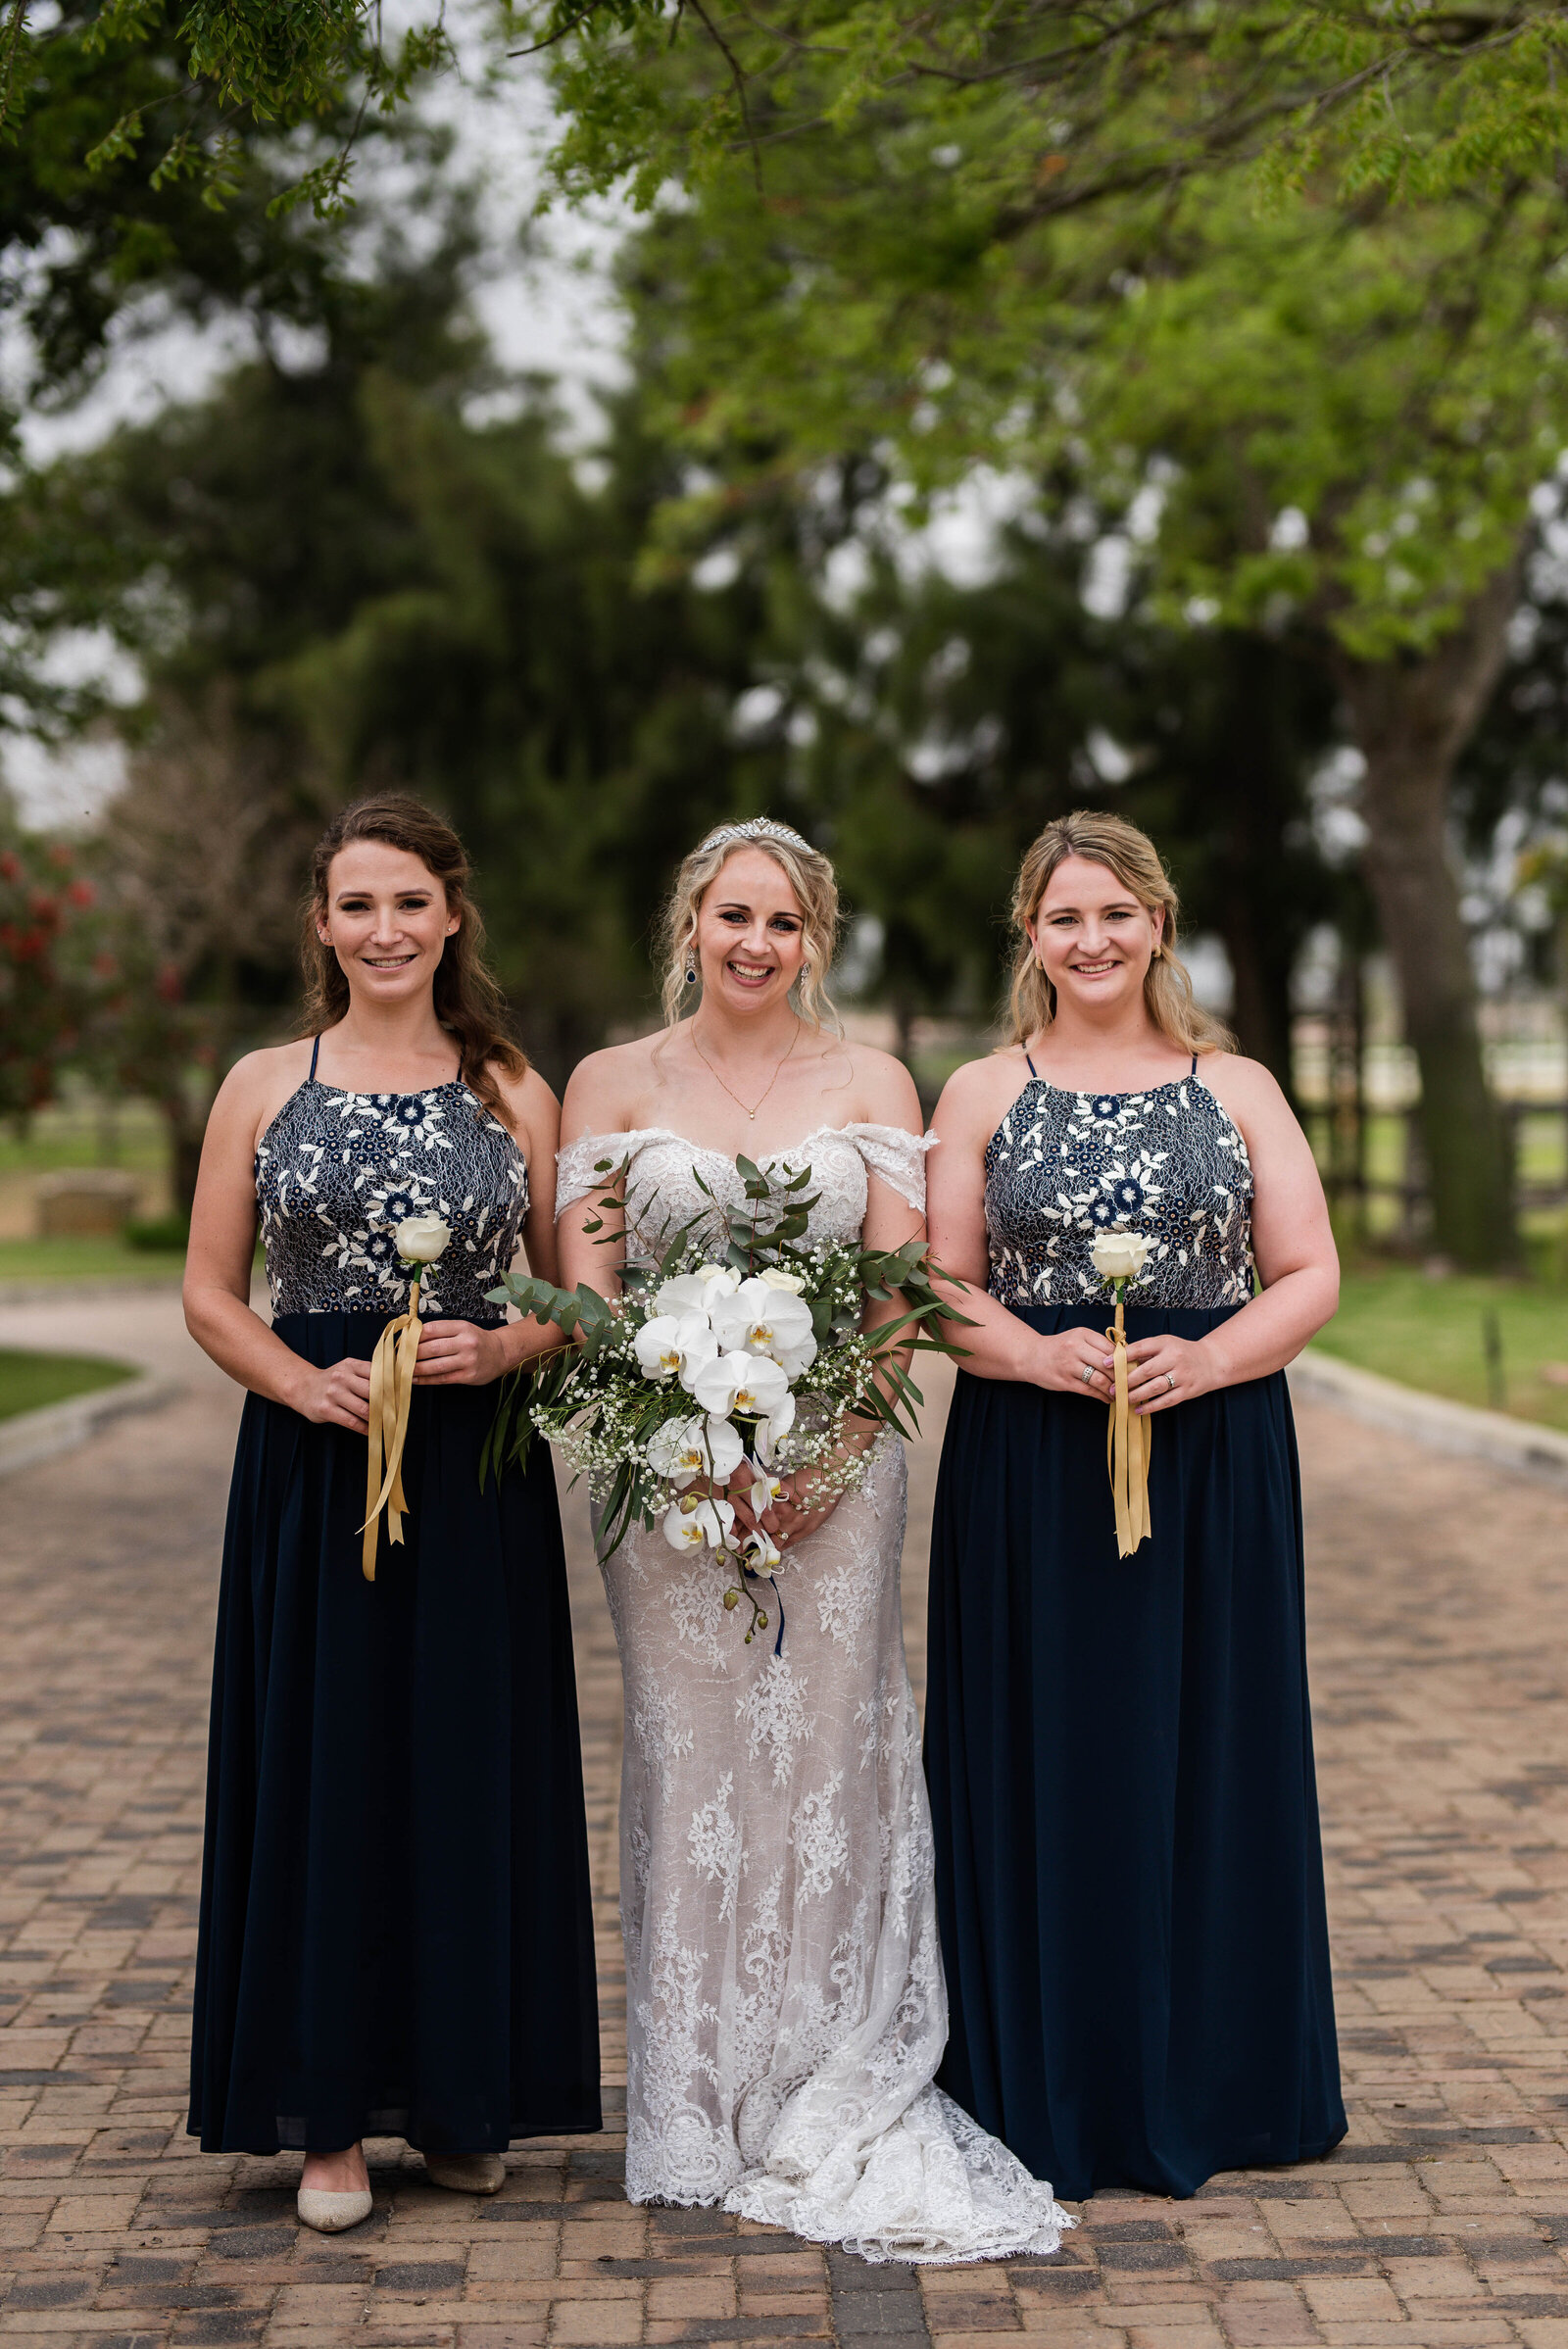 Wedding Photographer + Cape Town venue +Elri Photography+ Weddingdress (27)